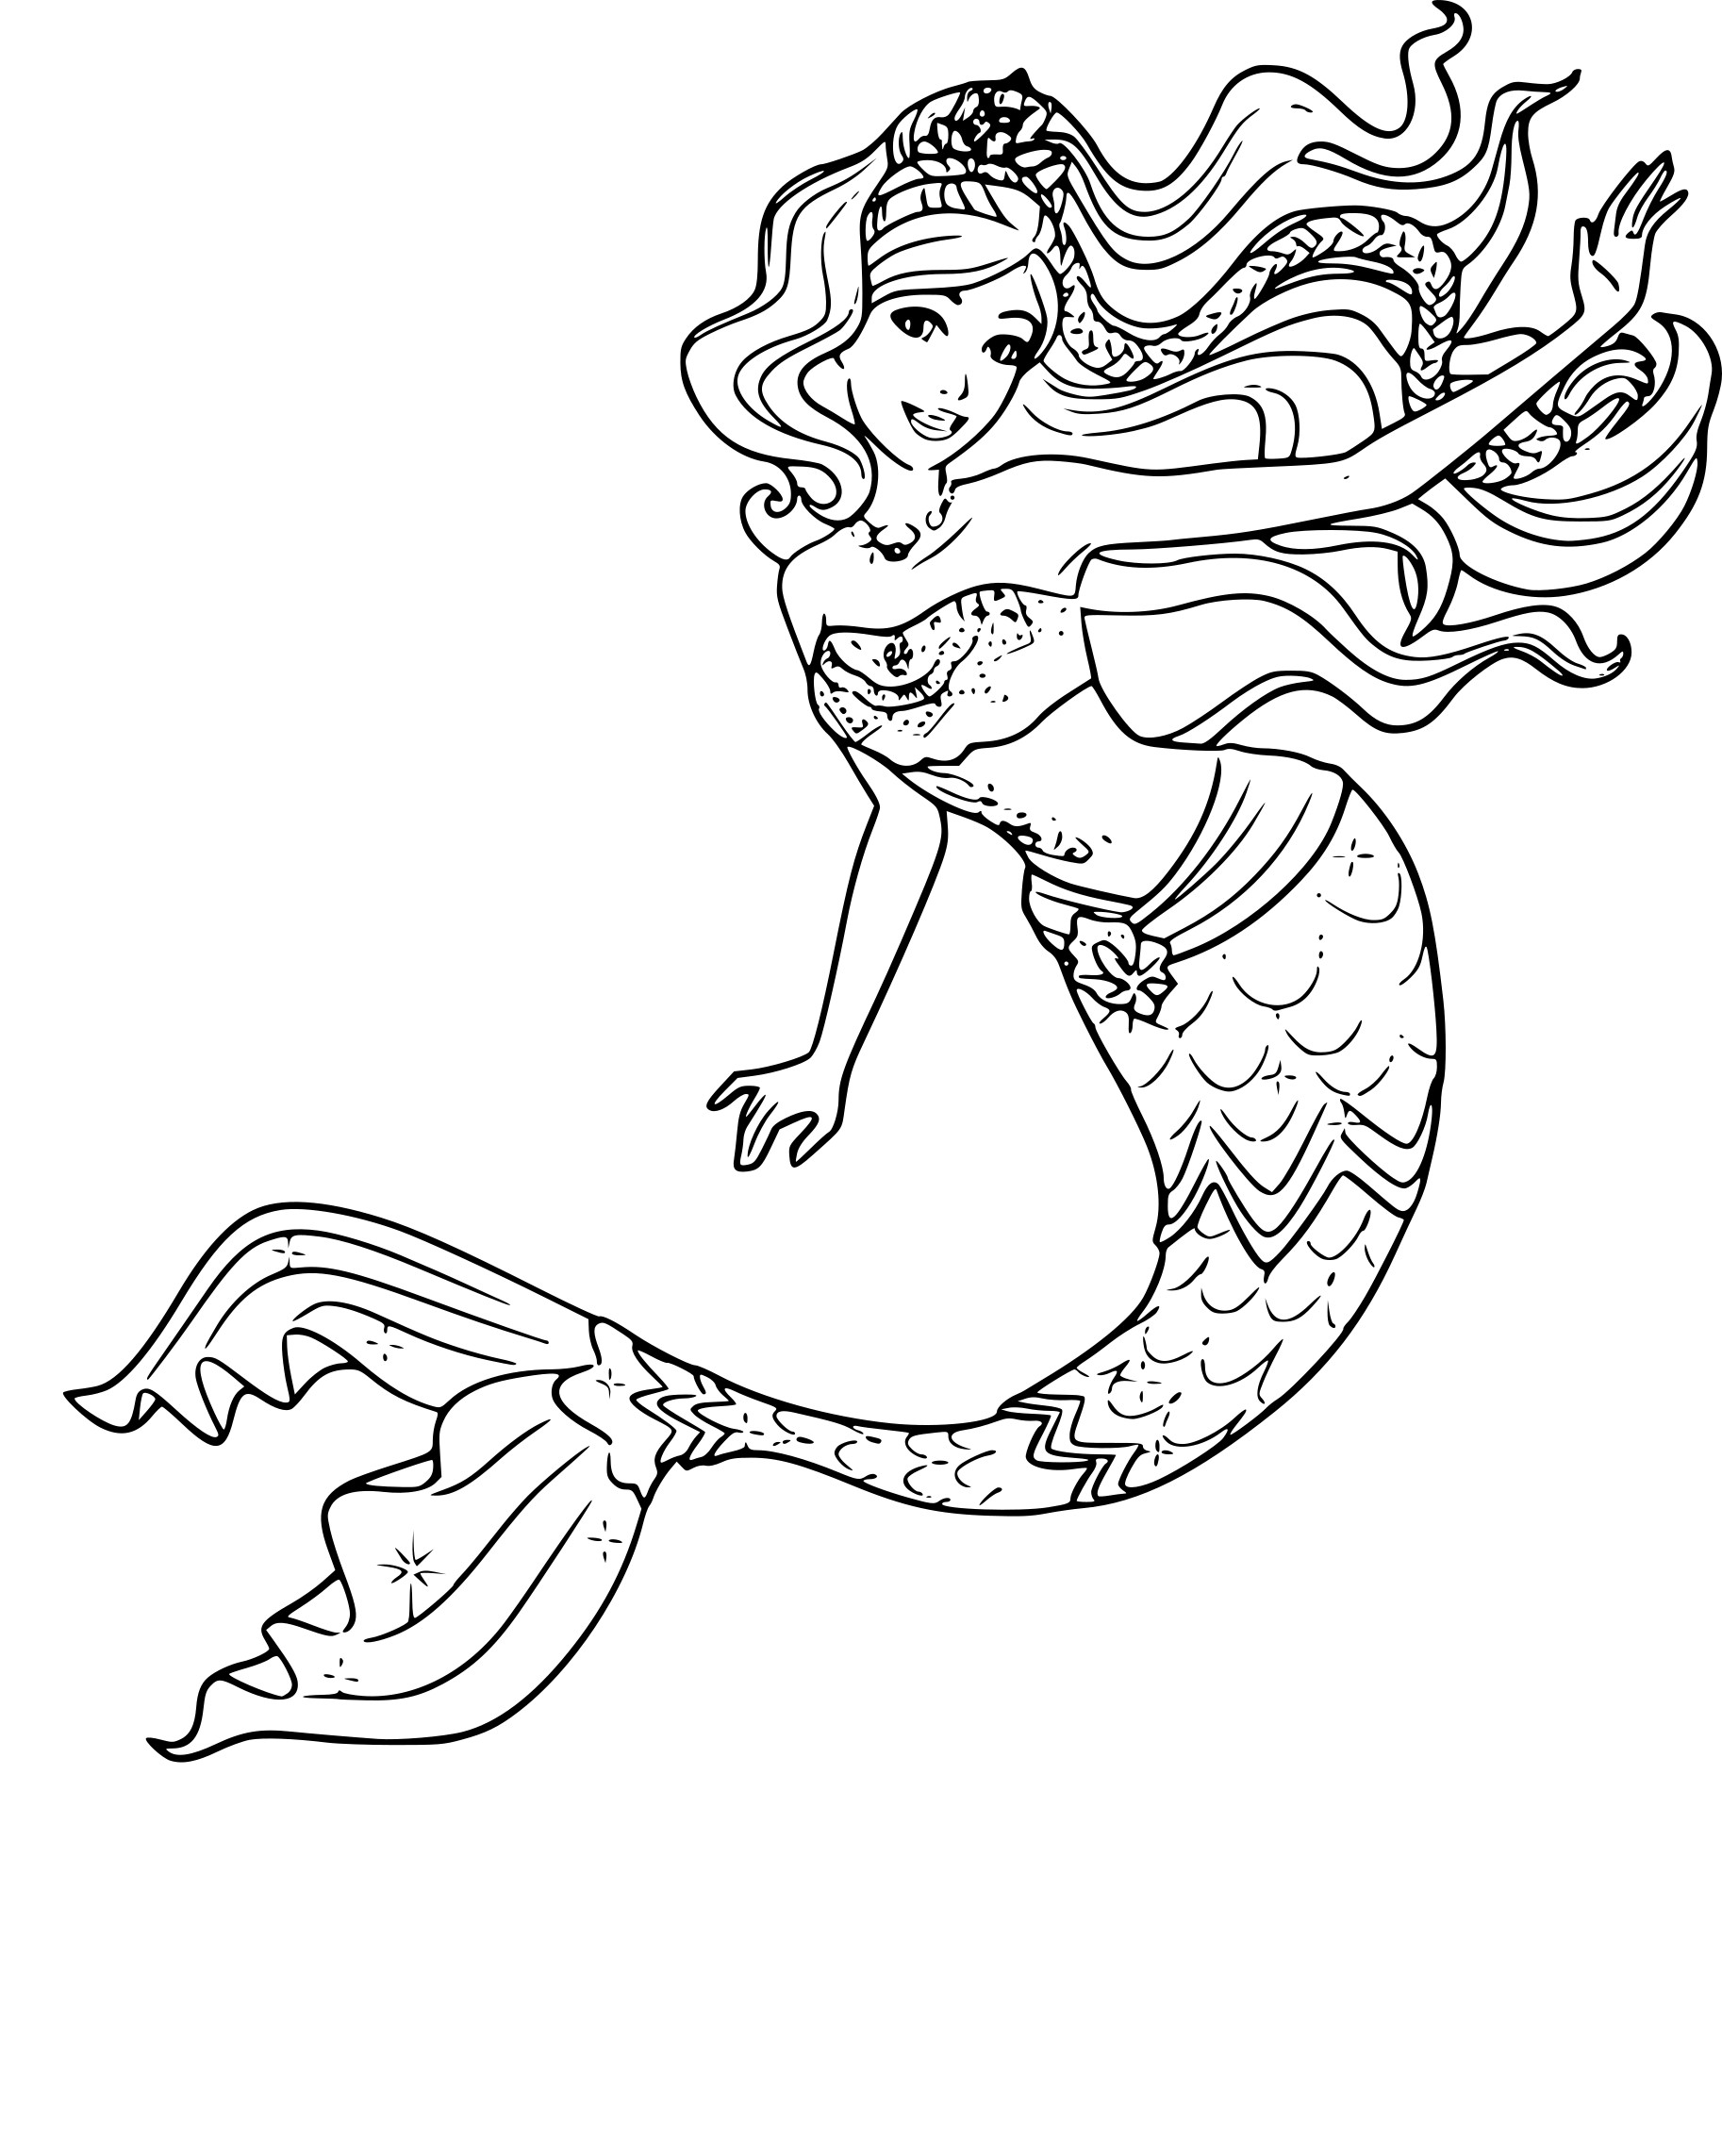 Coloriage barbie sir ne 2 imprimer gratuit - Dessin de barbie sirene ...